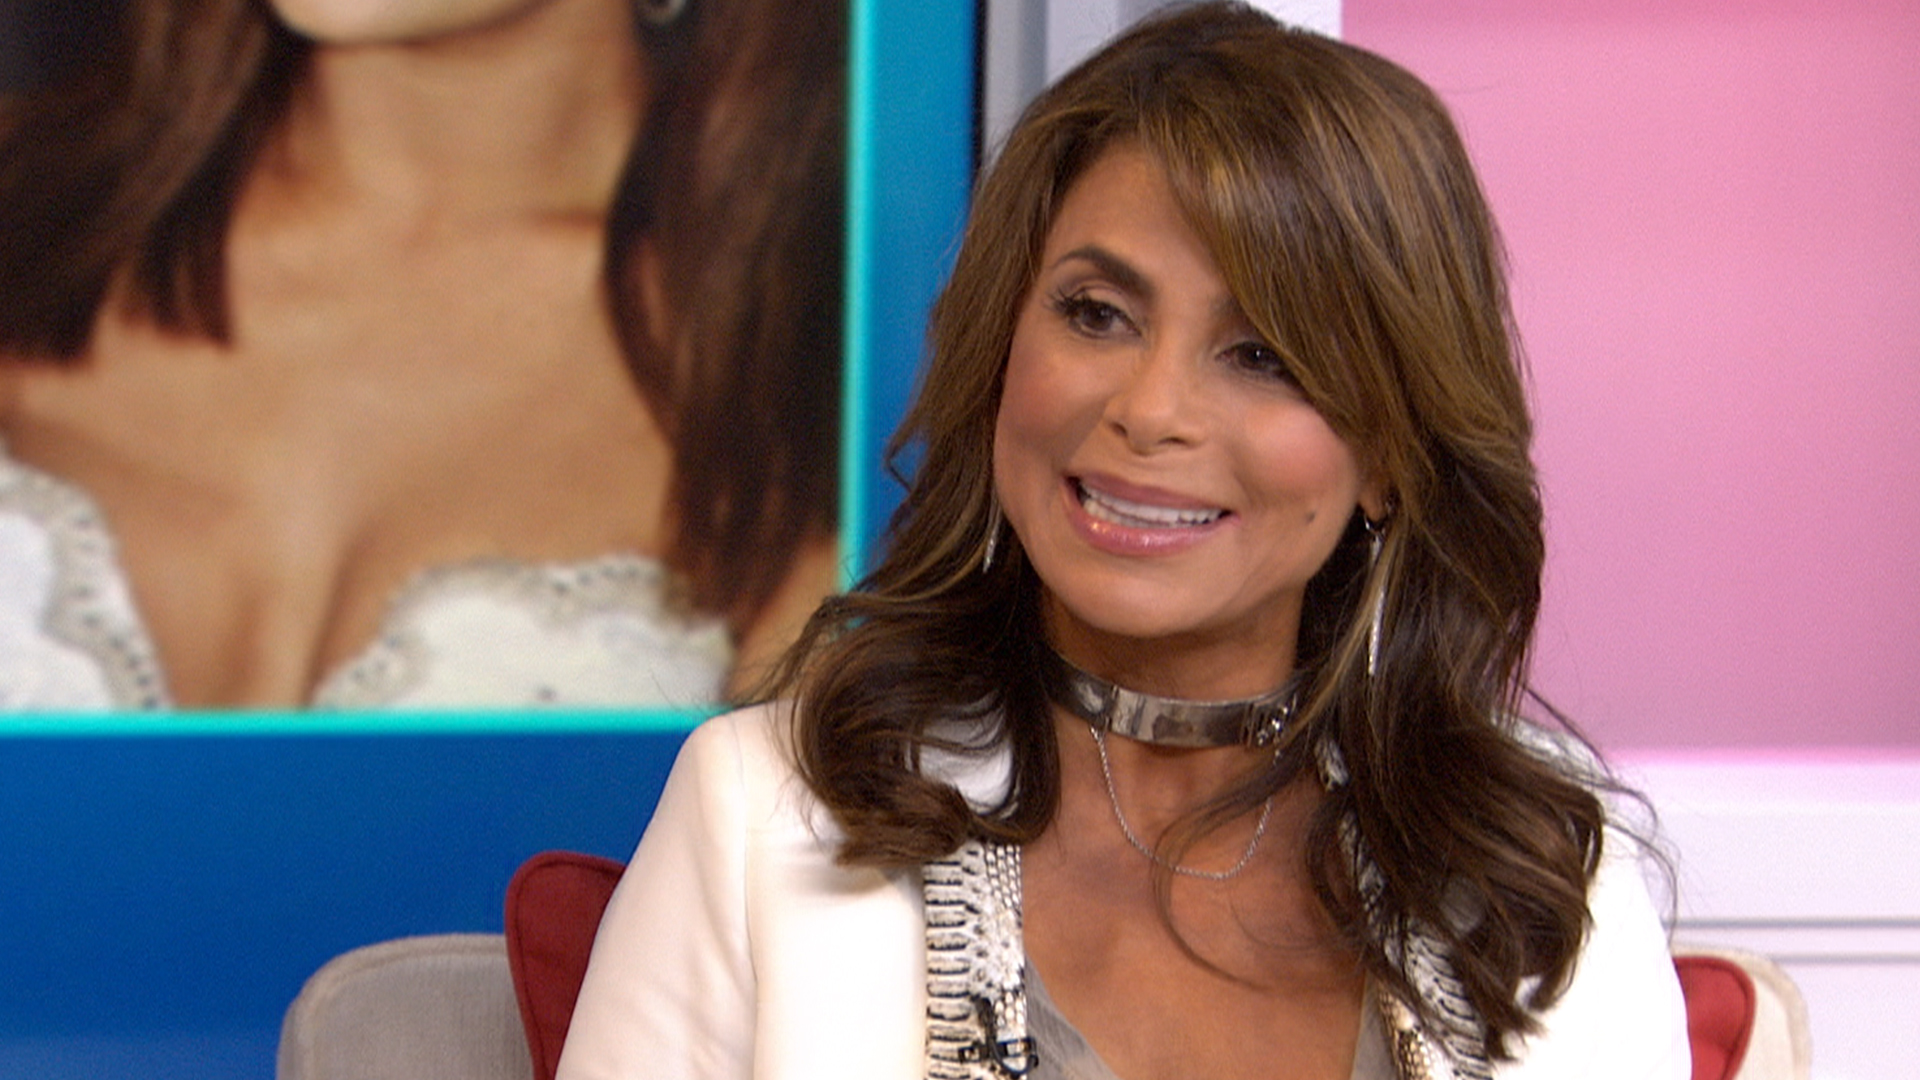 Paula Abdul Wallpapers High Quality Download Free